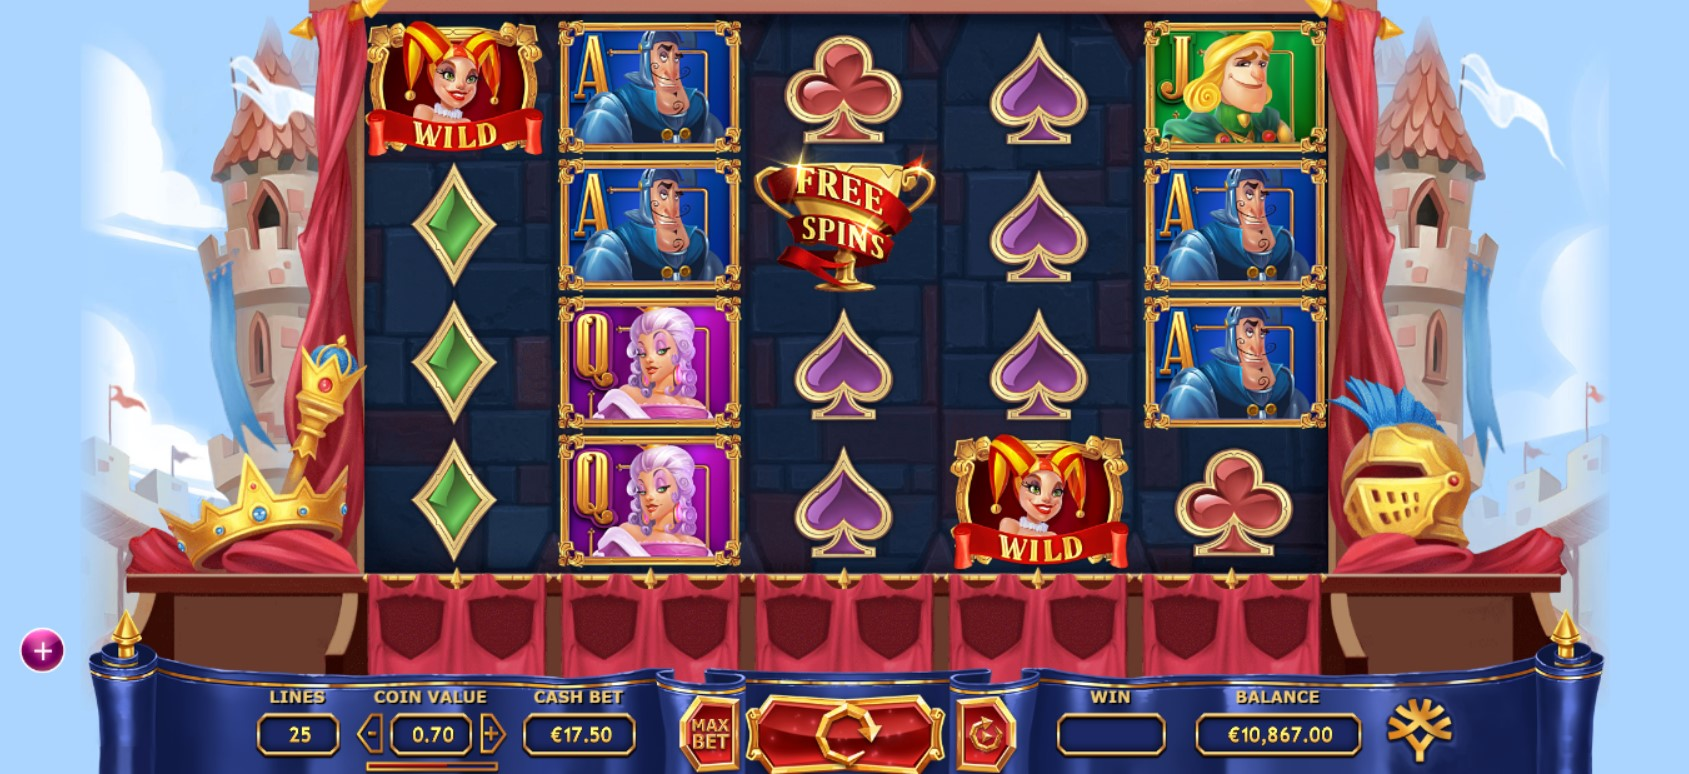 The Royal Family Slot Gameplay